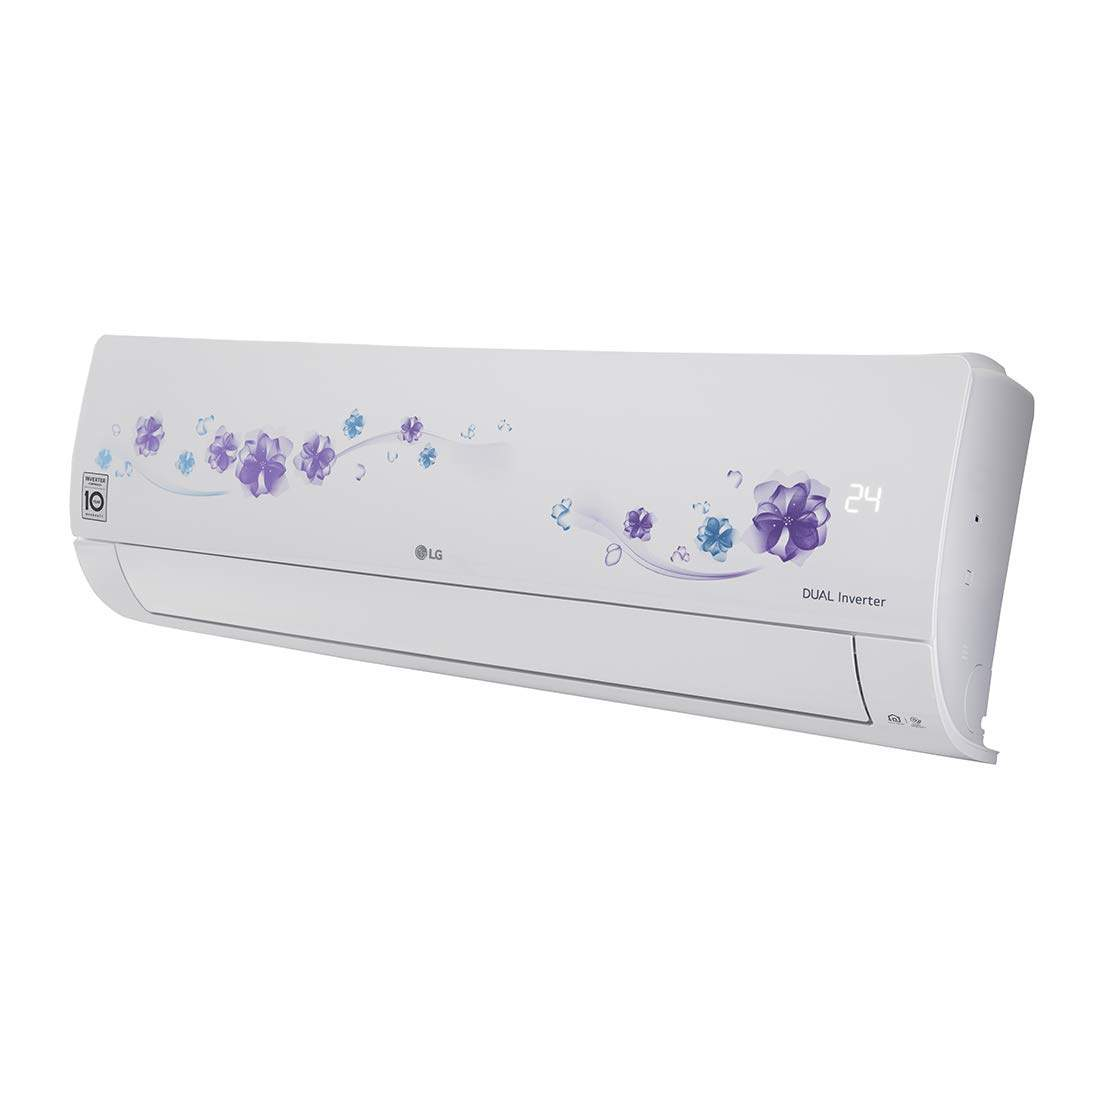 LG 1.5 Ton 5 Star Inverter Split AC (Copper, KS-Q18FNZD, Floral White)